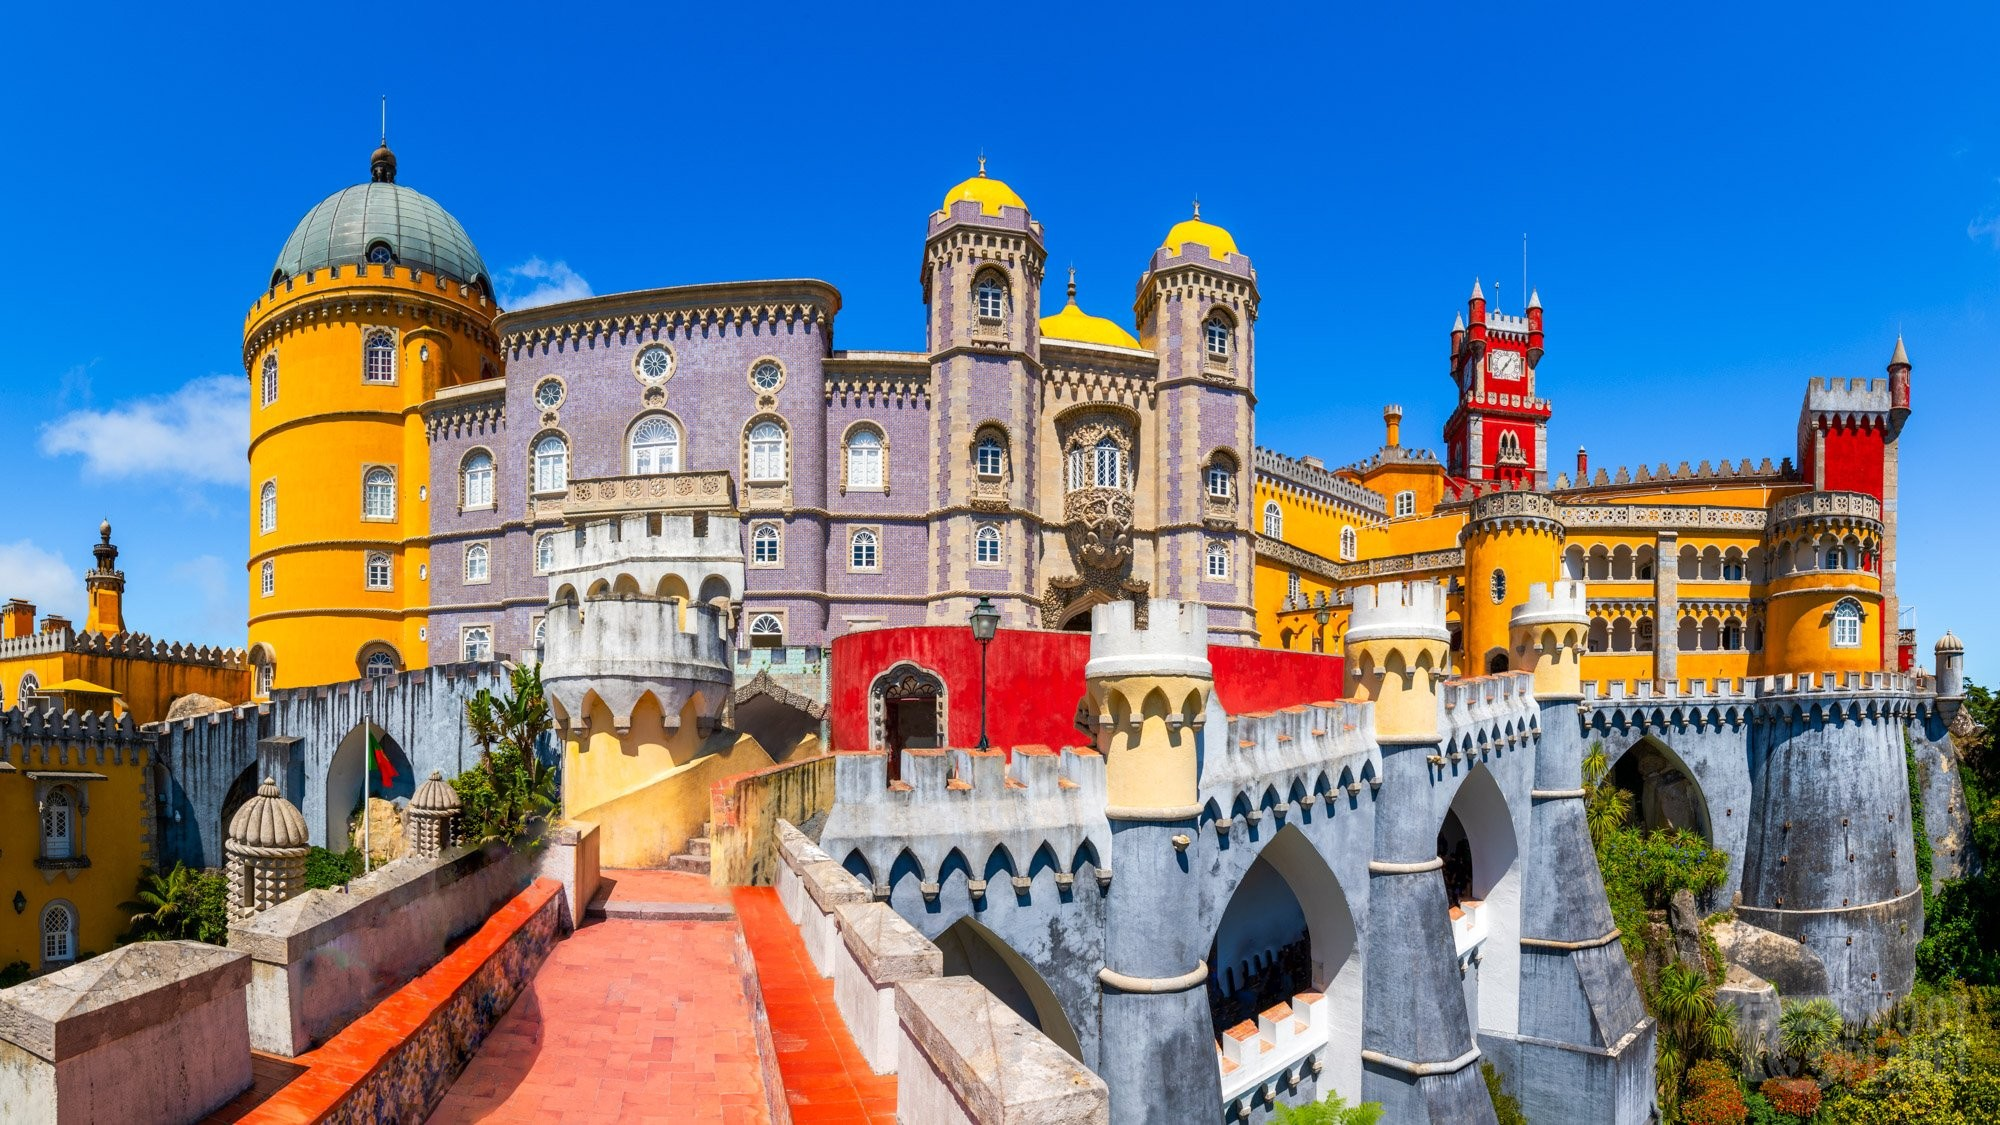 Pena Palace panorama in Sintra, Portugal